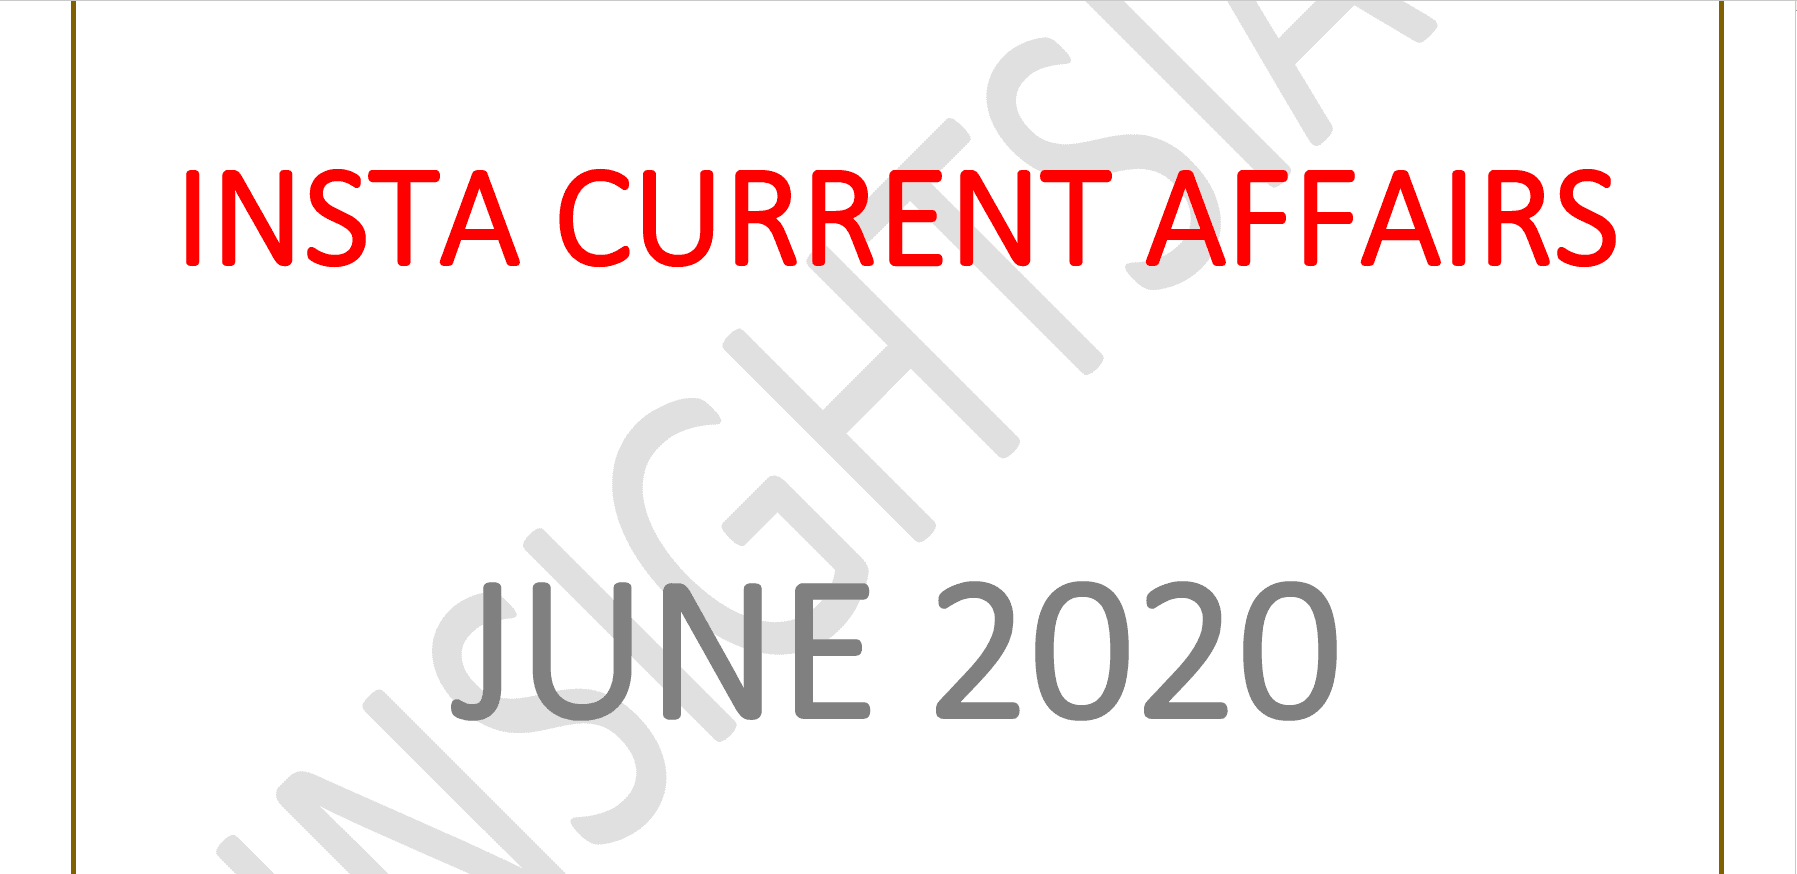 Insights IAS Current Affairs June 2020